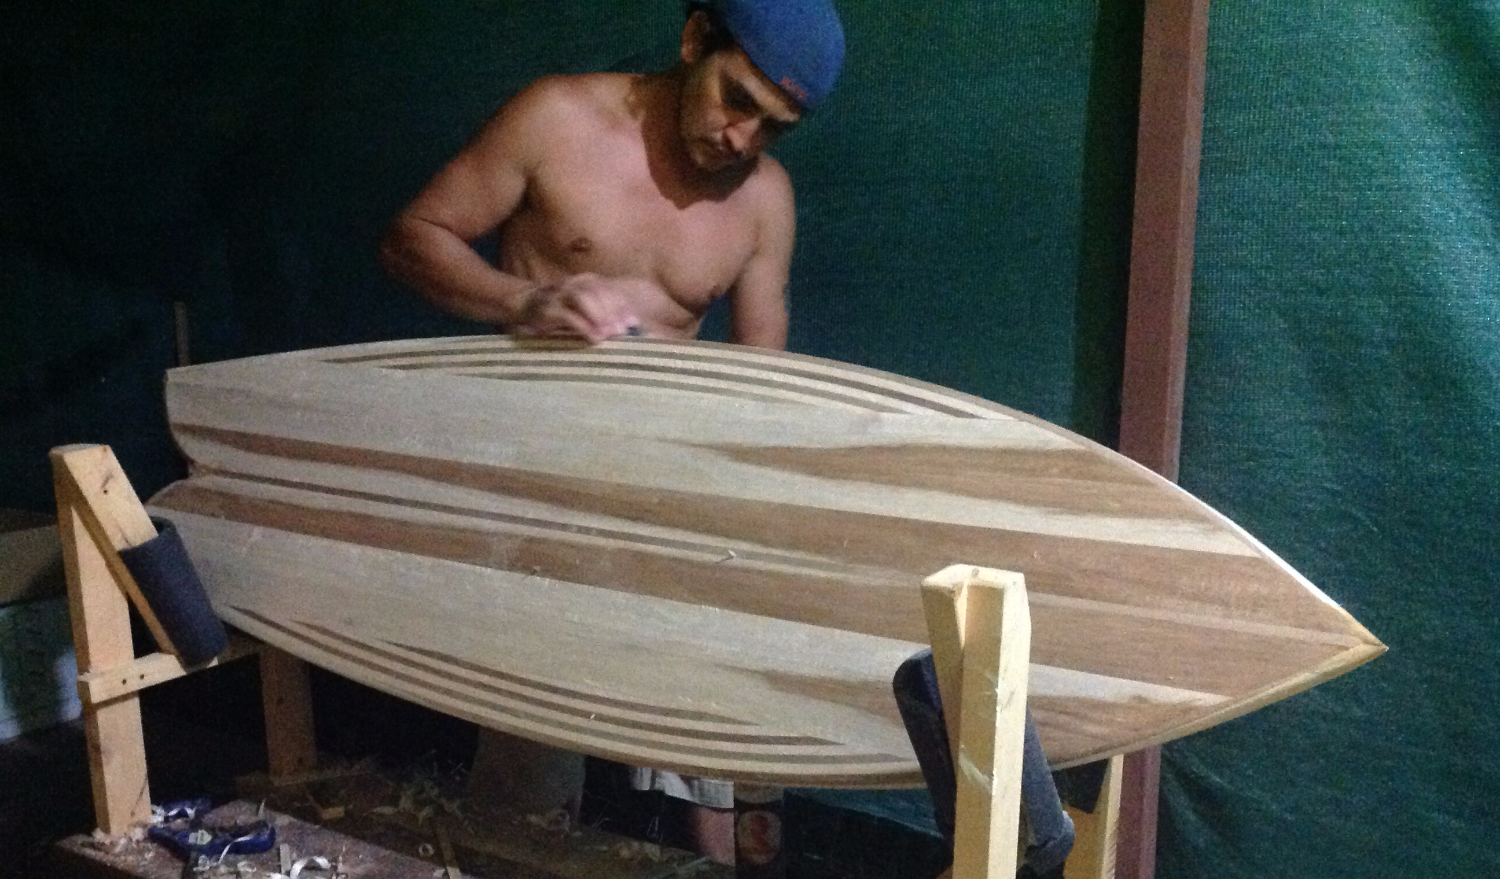 Balsa hollow wood surfboard